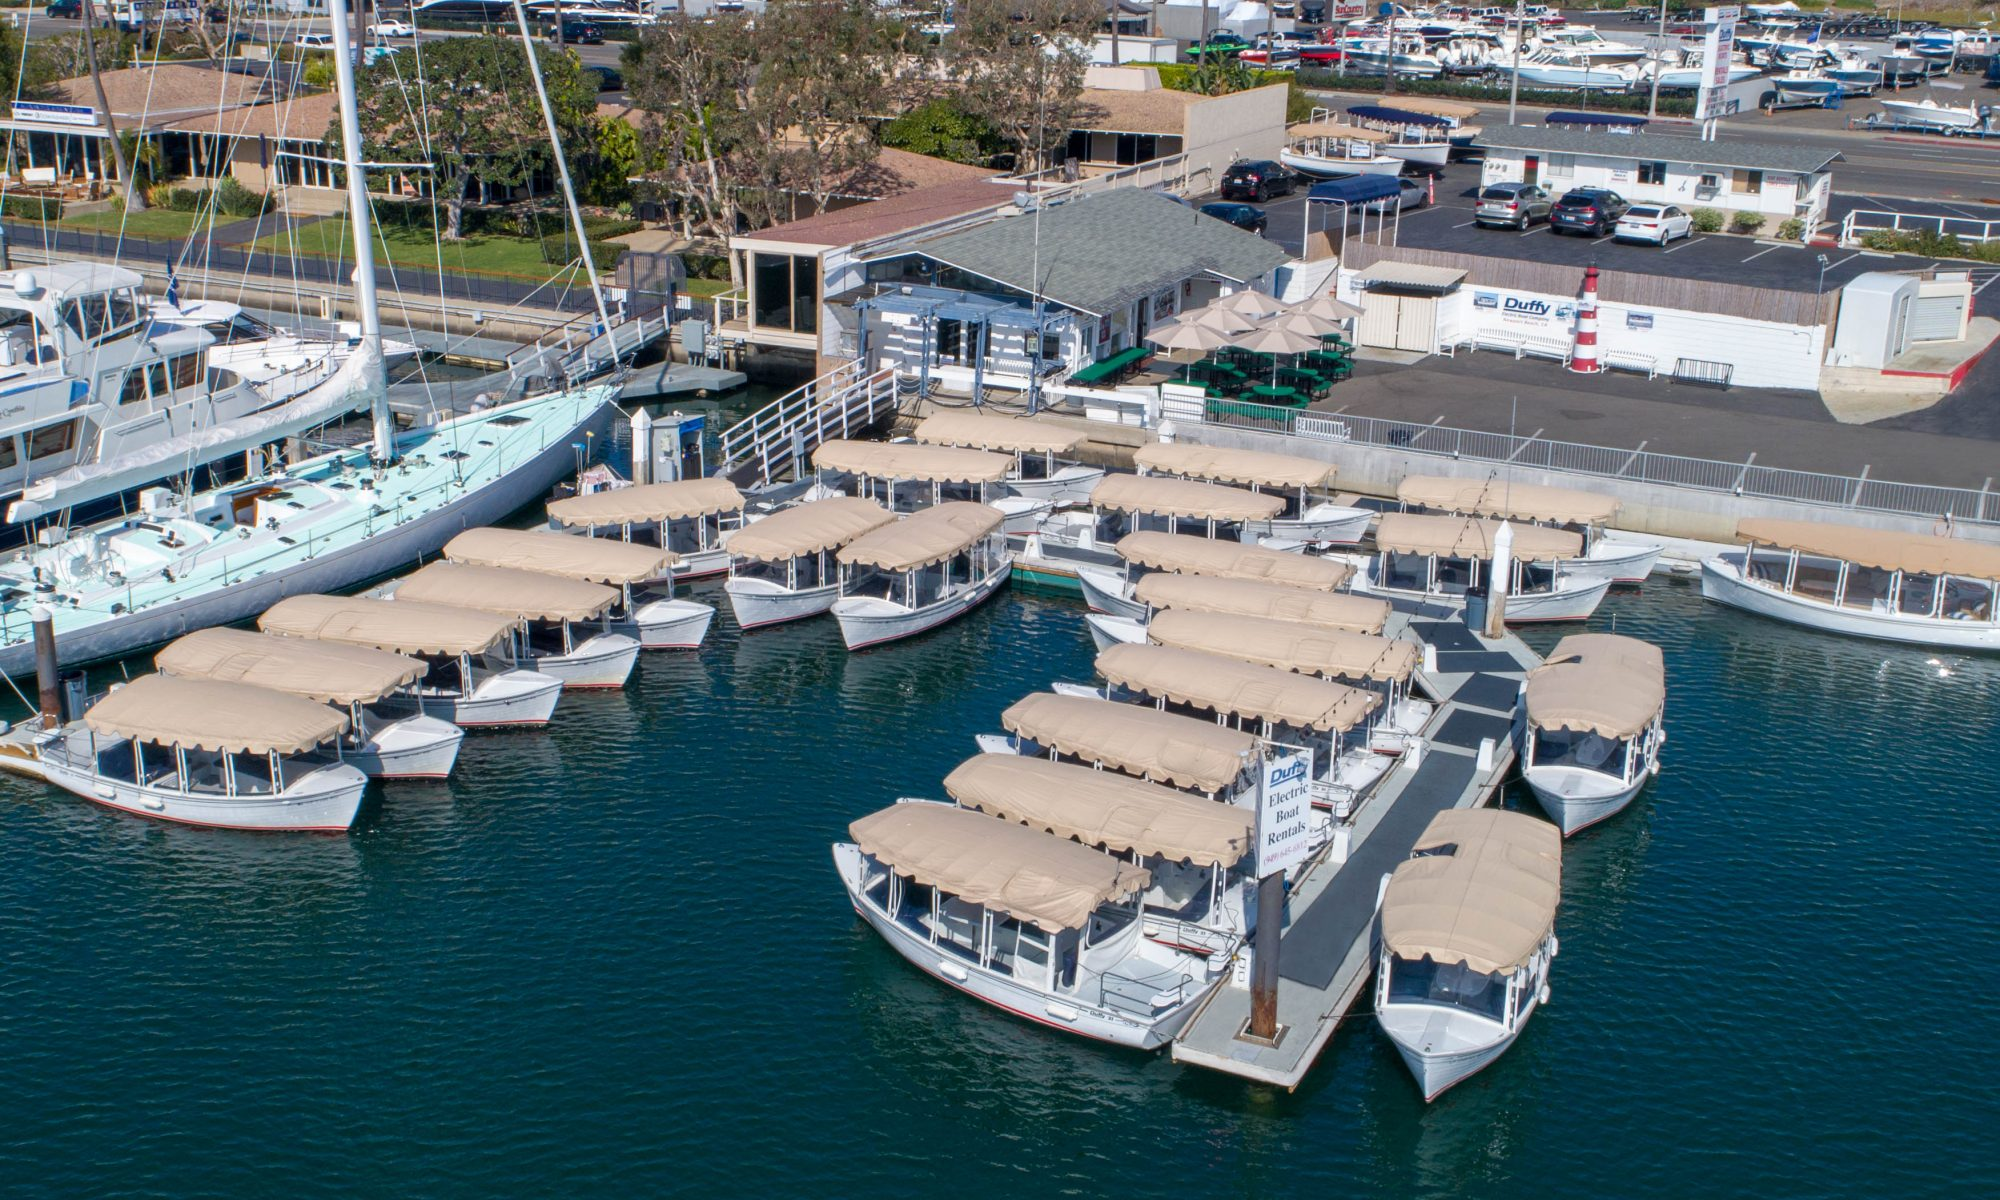 duffy electric boats rental site in Newport Beach, CA